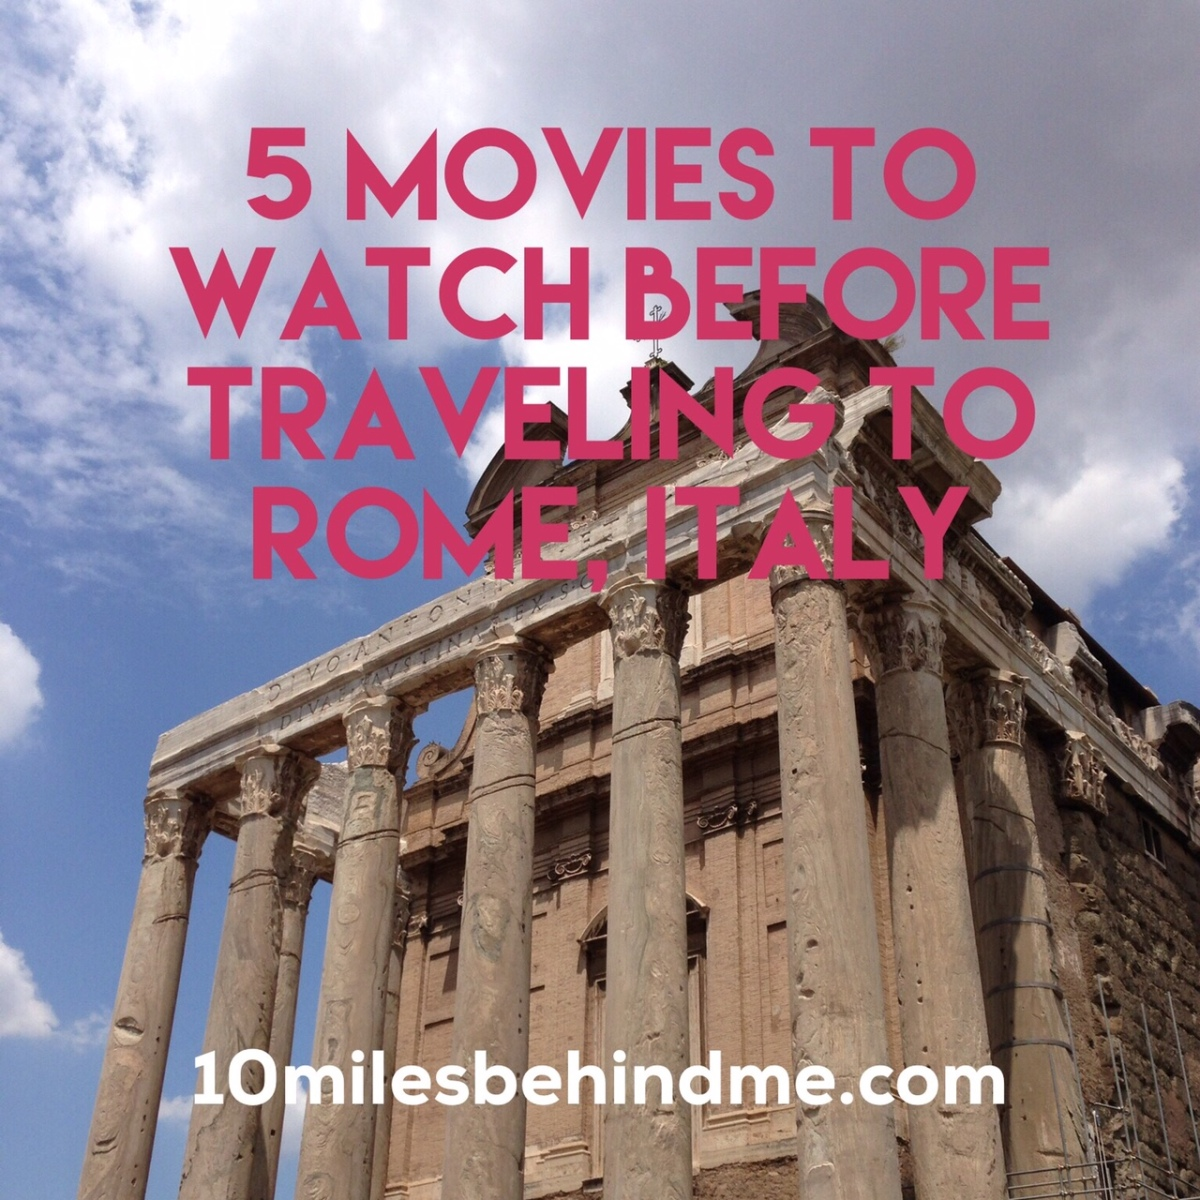 Italy | 5 Movies to Watch Before Traveling to Rome